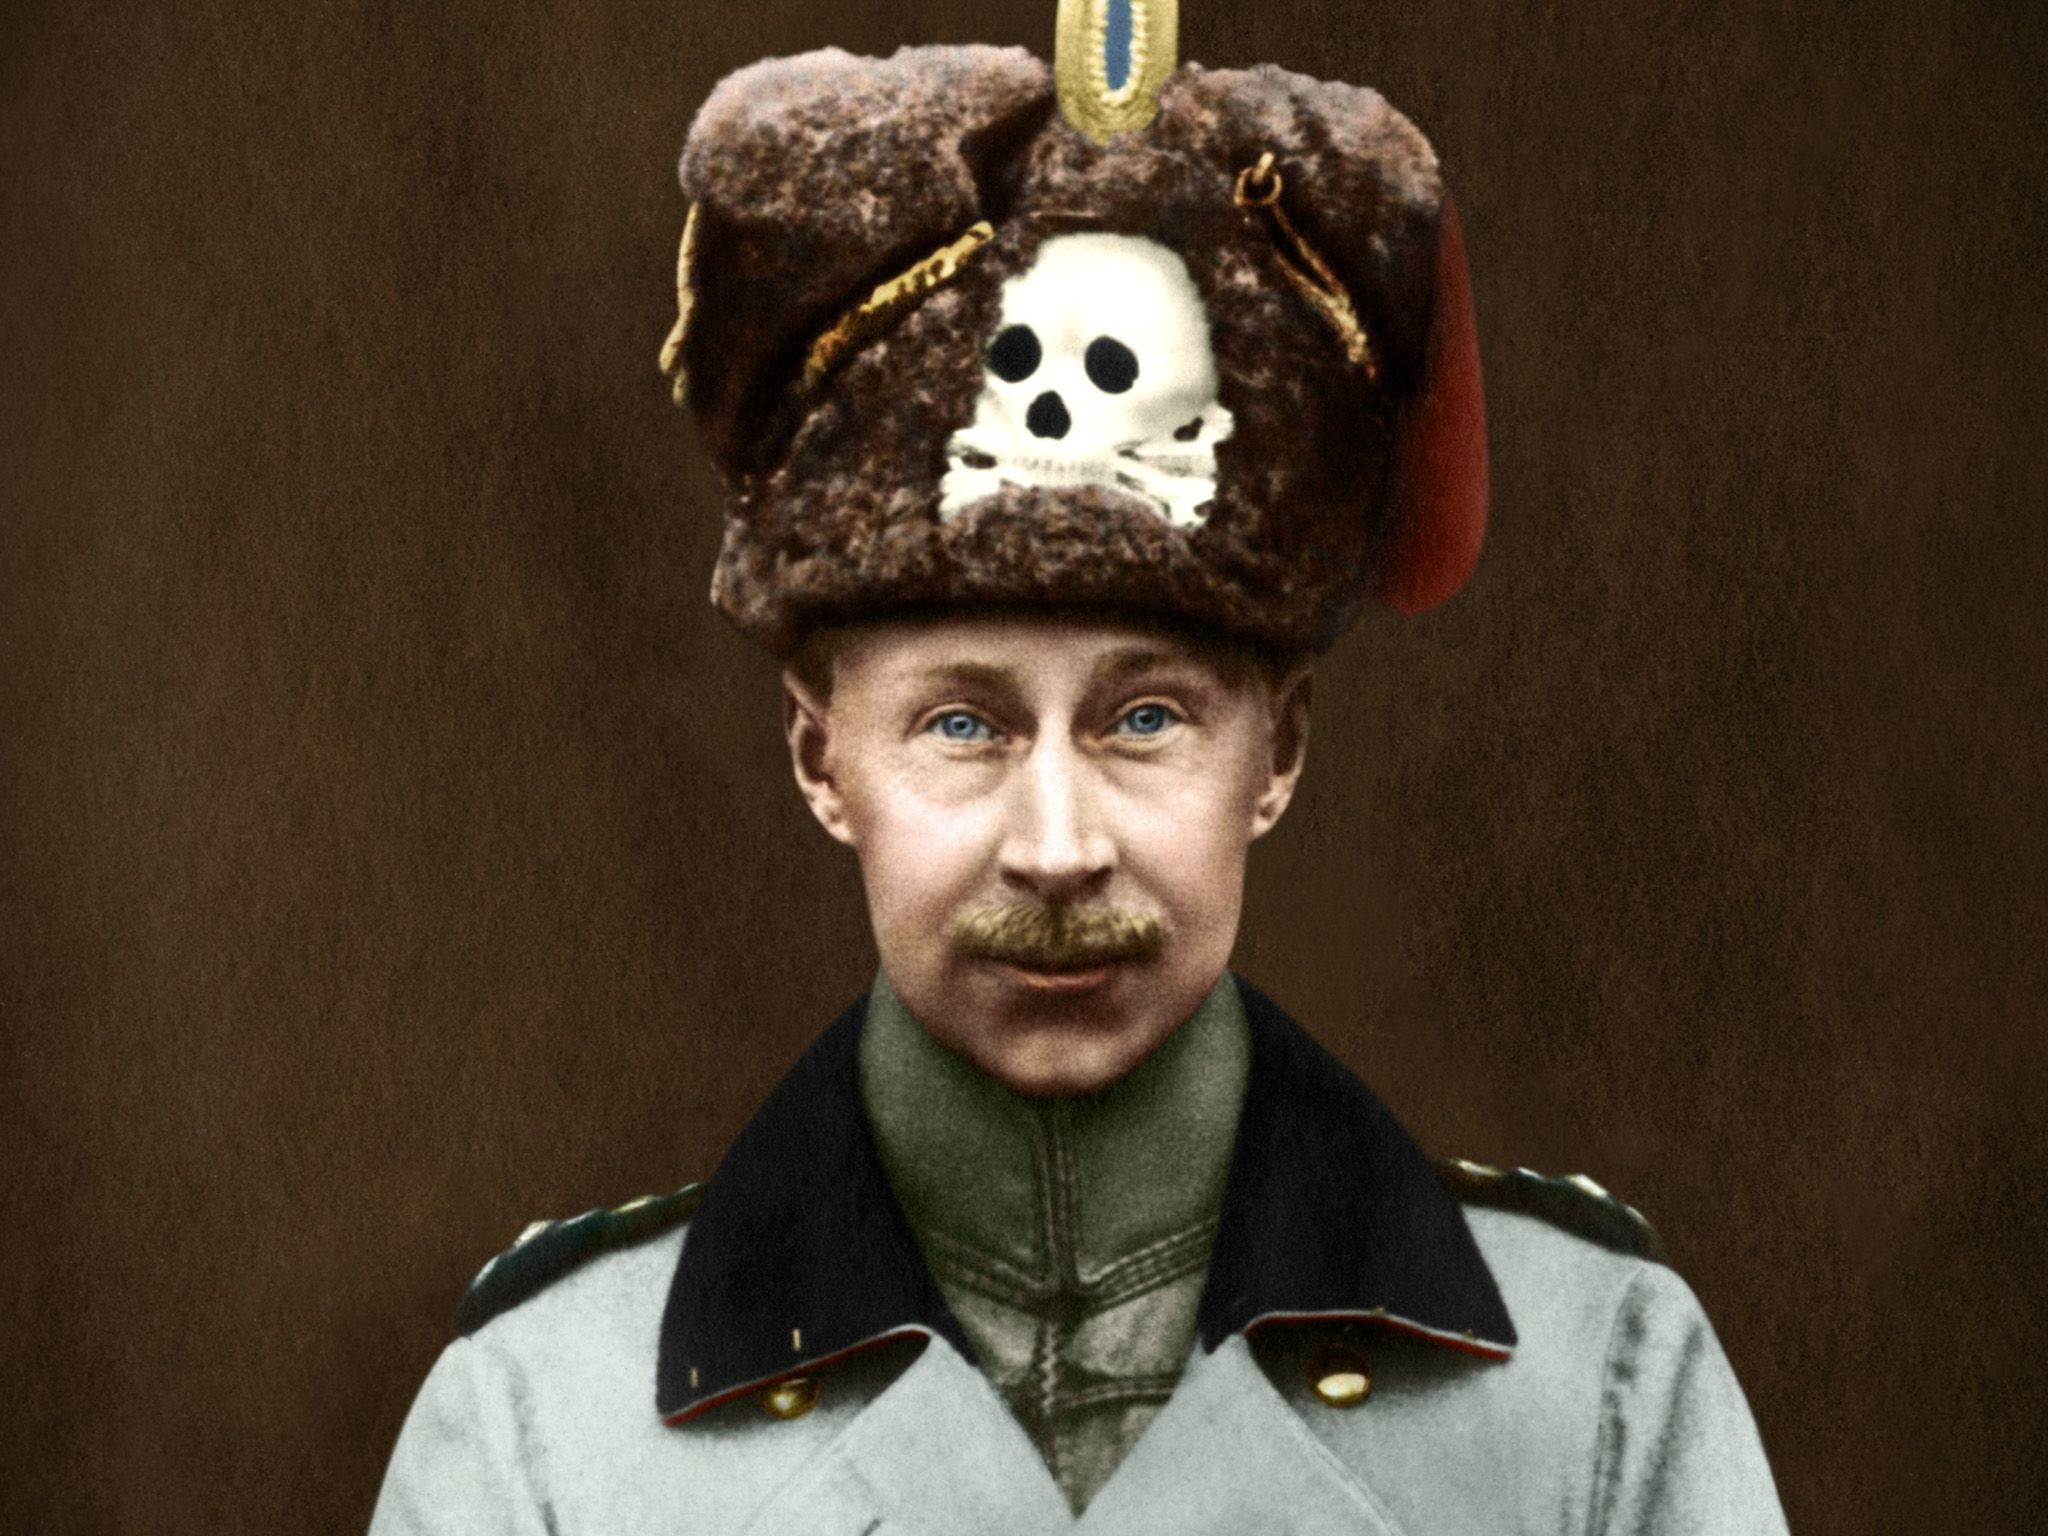 The Kronprinz (crown prince) Wilhelm of Prussia, with the skull and crossbones, the emblem of... [Photo of the day - دسامبر 2016]